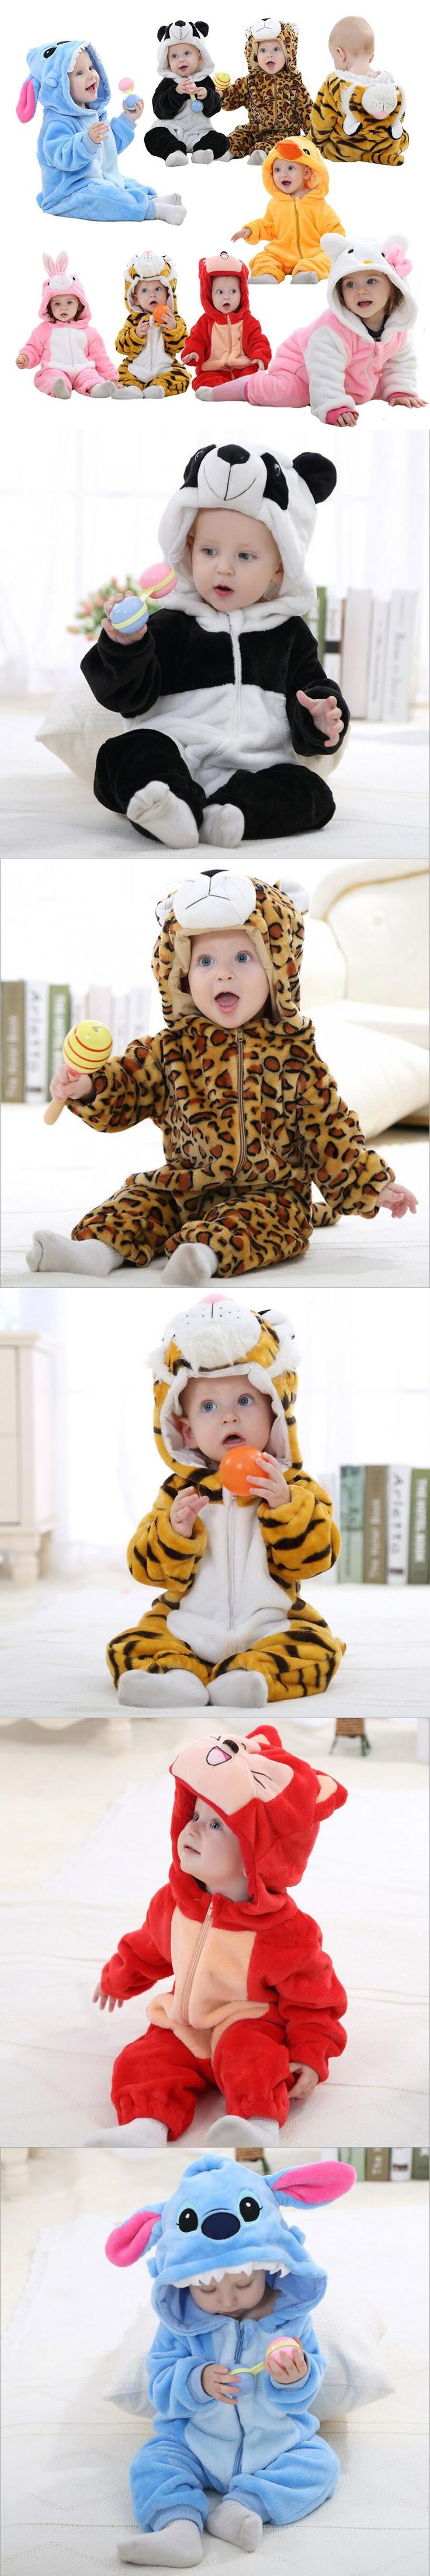 Baby rompers Hello kitty baby boys girls clothing new born baby clothes winter Jumpsuit christmas roupa de bebe recem nascido $15.98